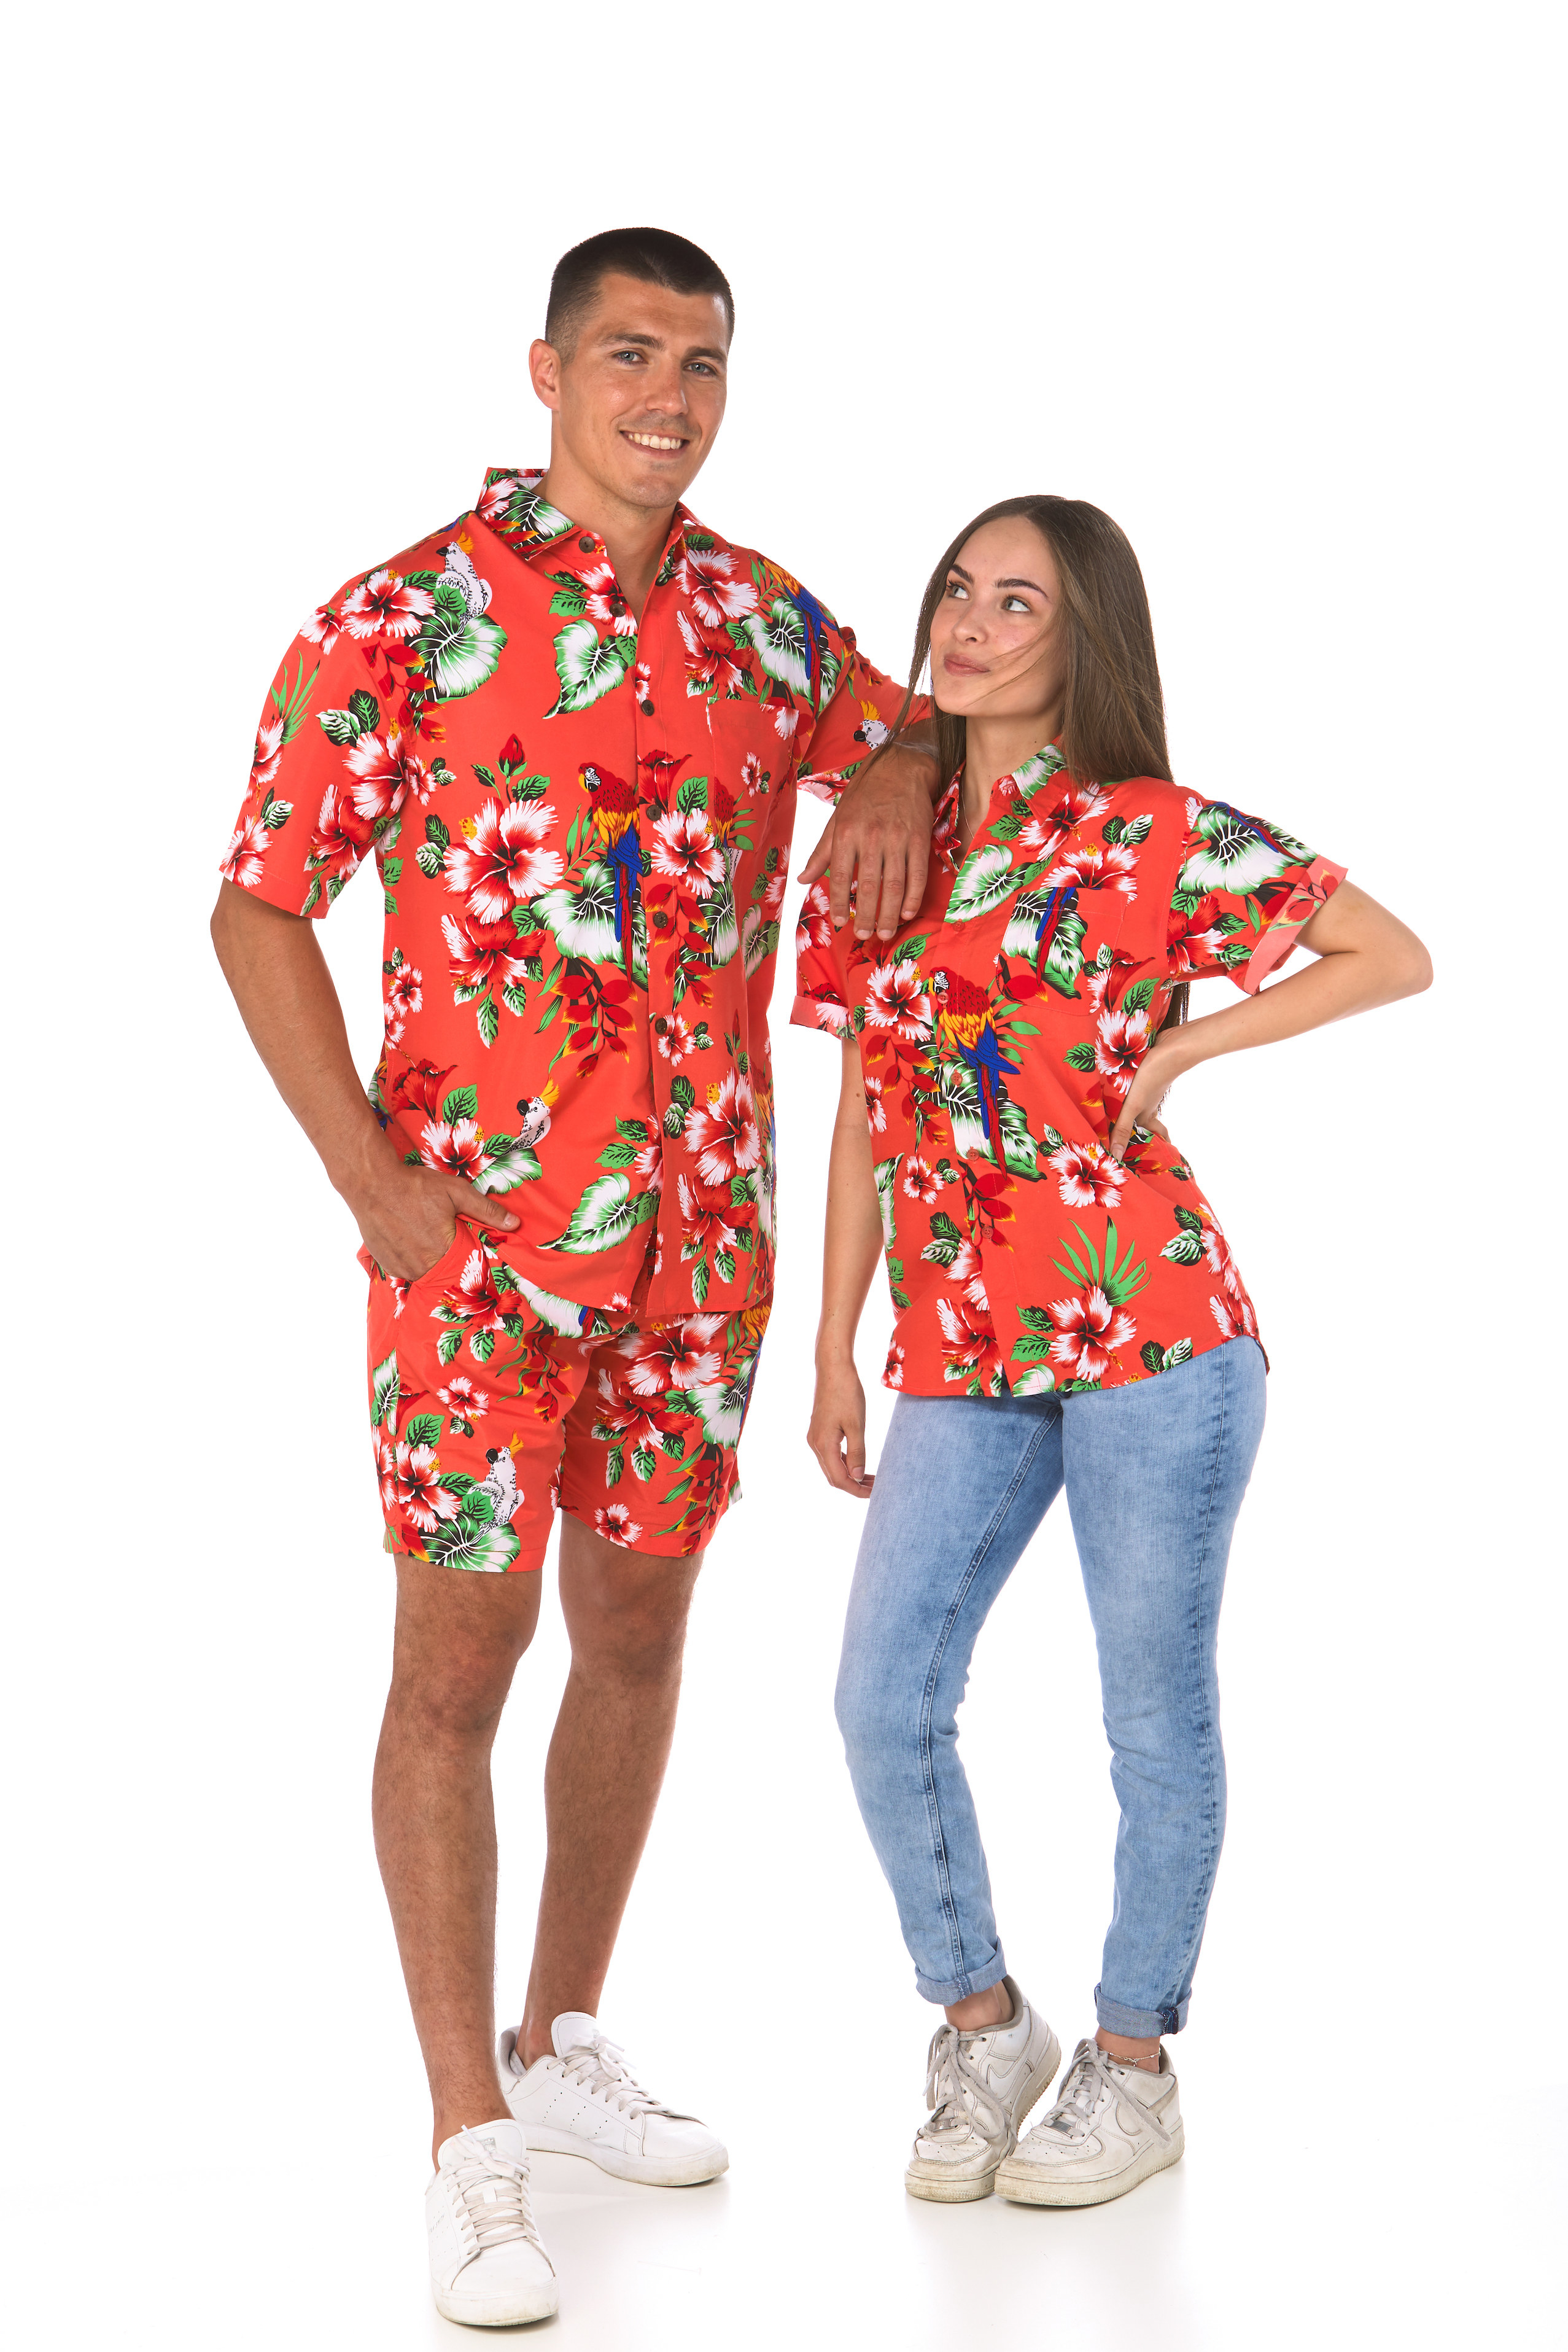 Man and woman pose in matching red Lowes' shirts with hibiscus flowers and parrots